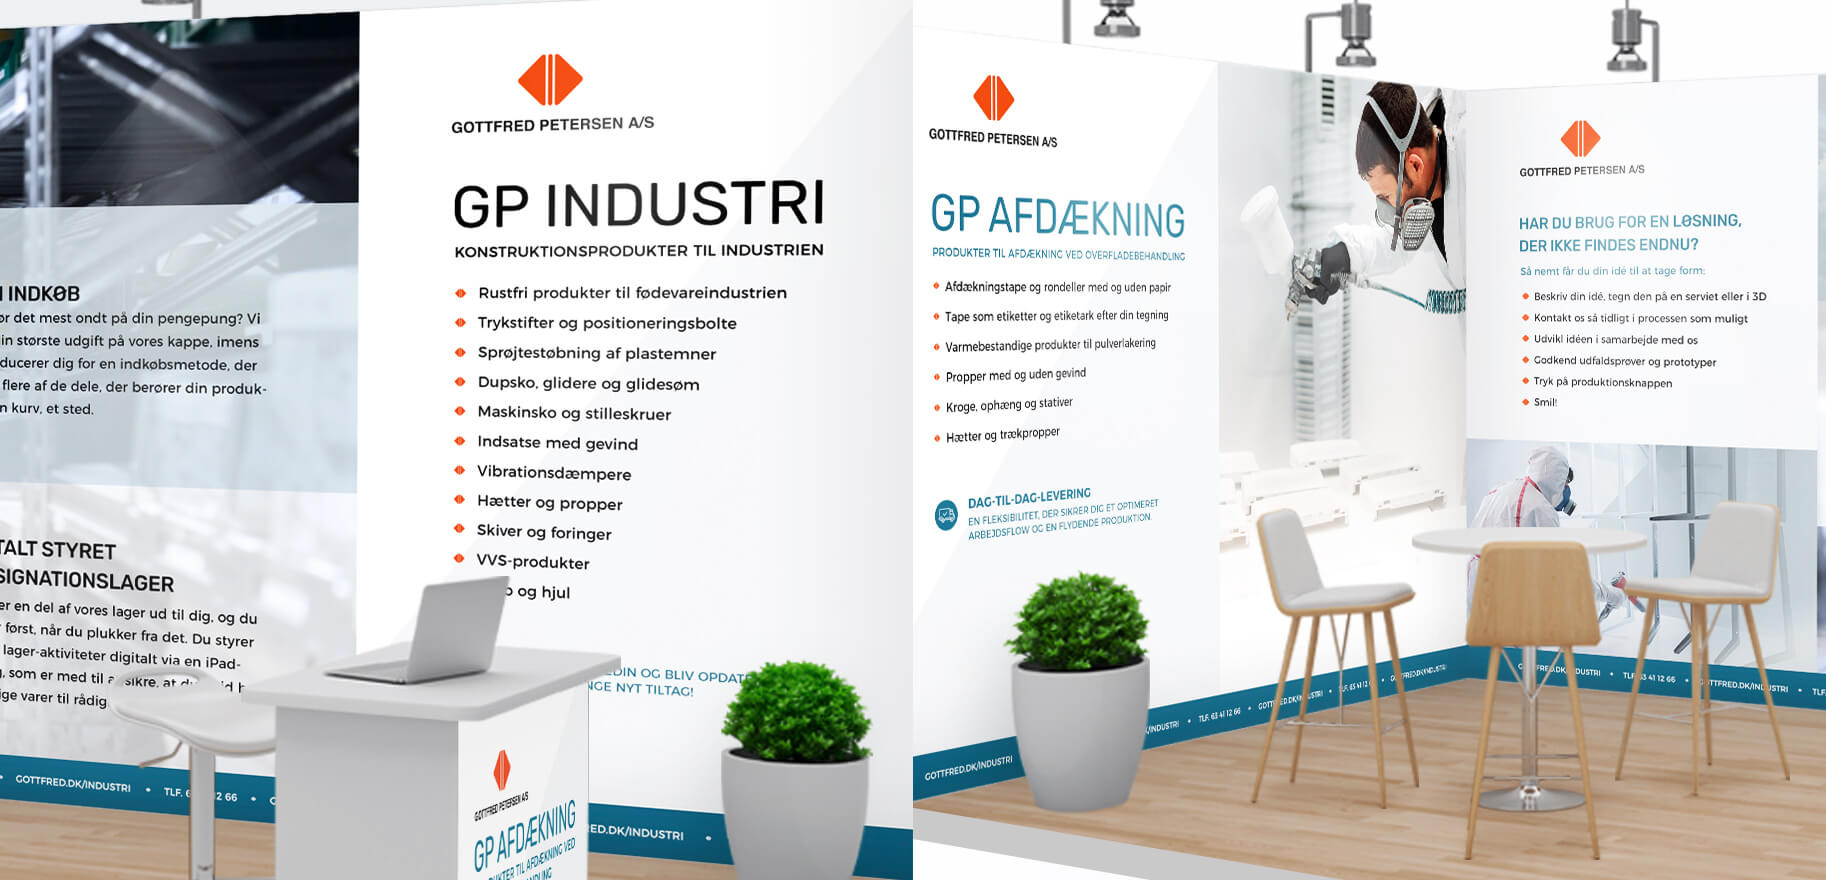 Messestand i genanvendeligt materiale til Gottfred Petersen